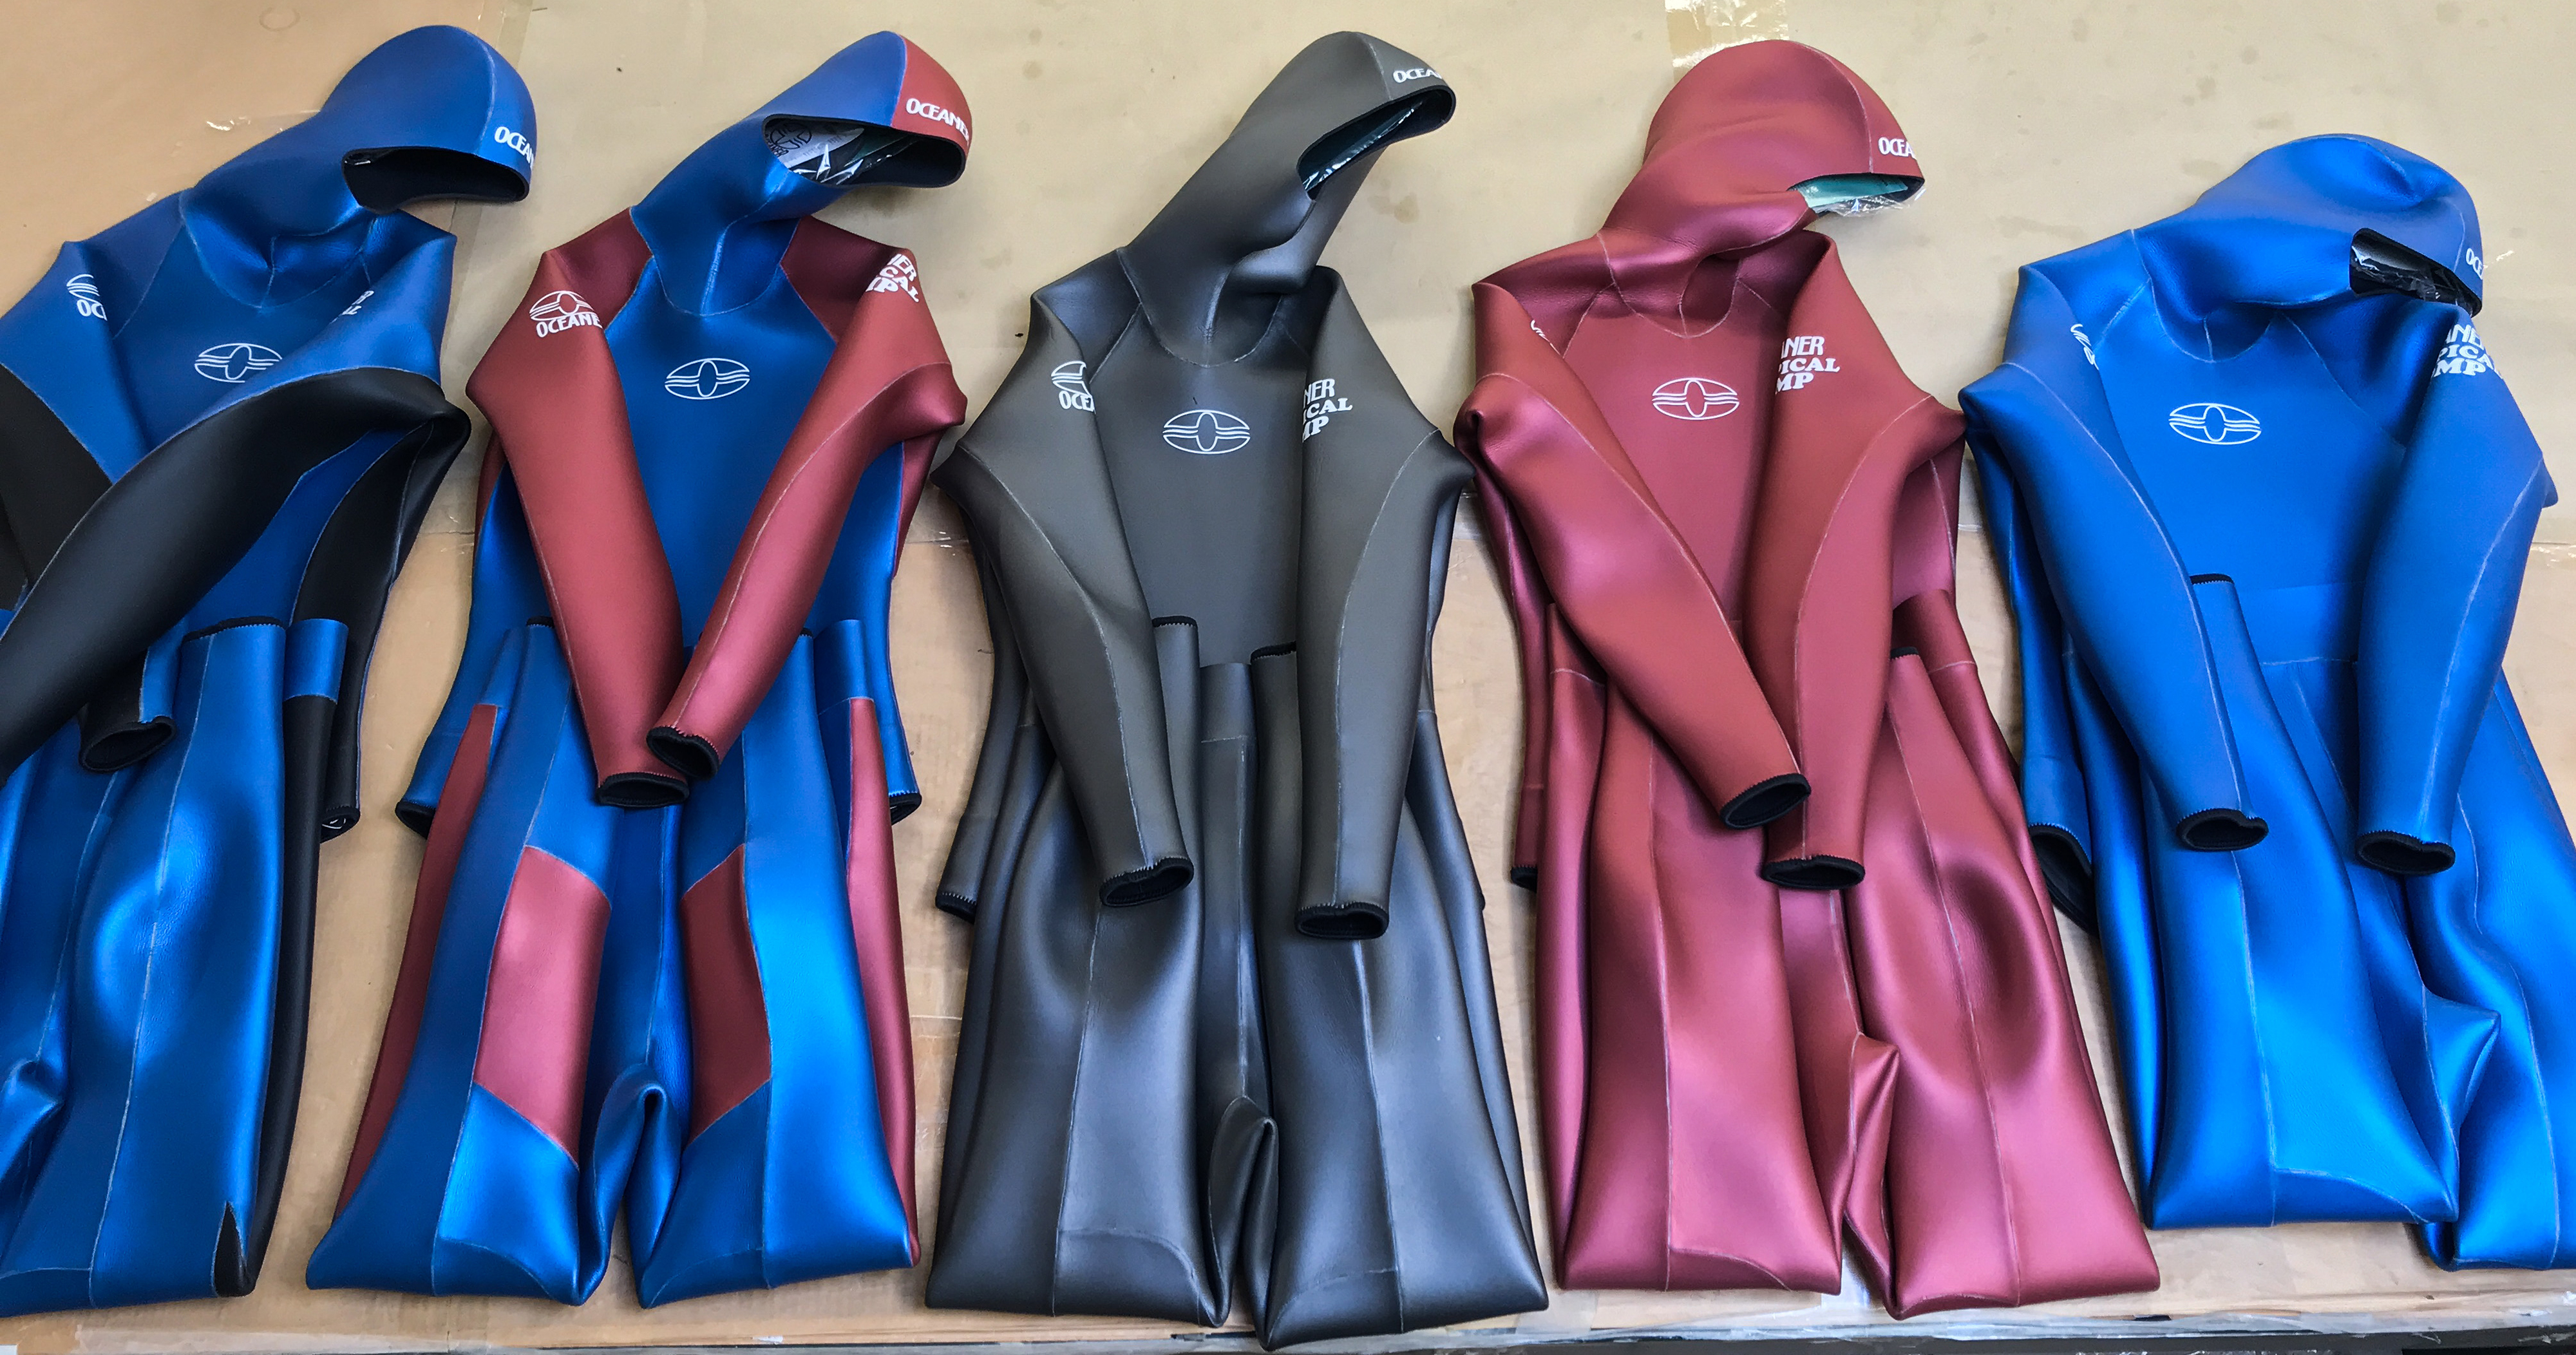 Oceaner Unveils New Tropical COMP Freediving Wetsuit